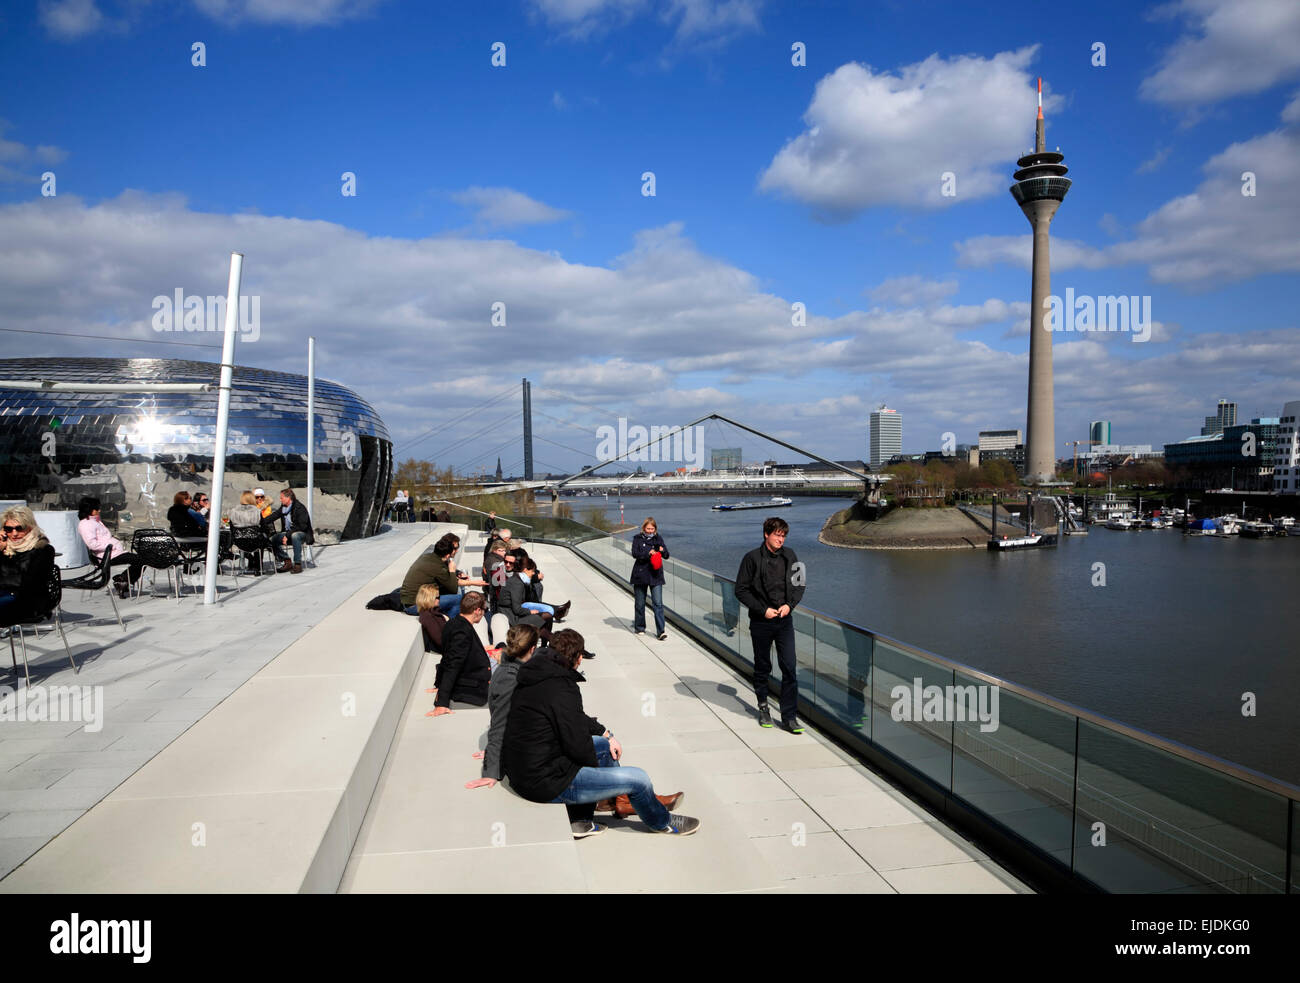 Medienhafen (Media distrikt), Northrhine Westphalia, Germany, Europe - Stock Image